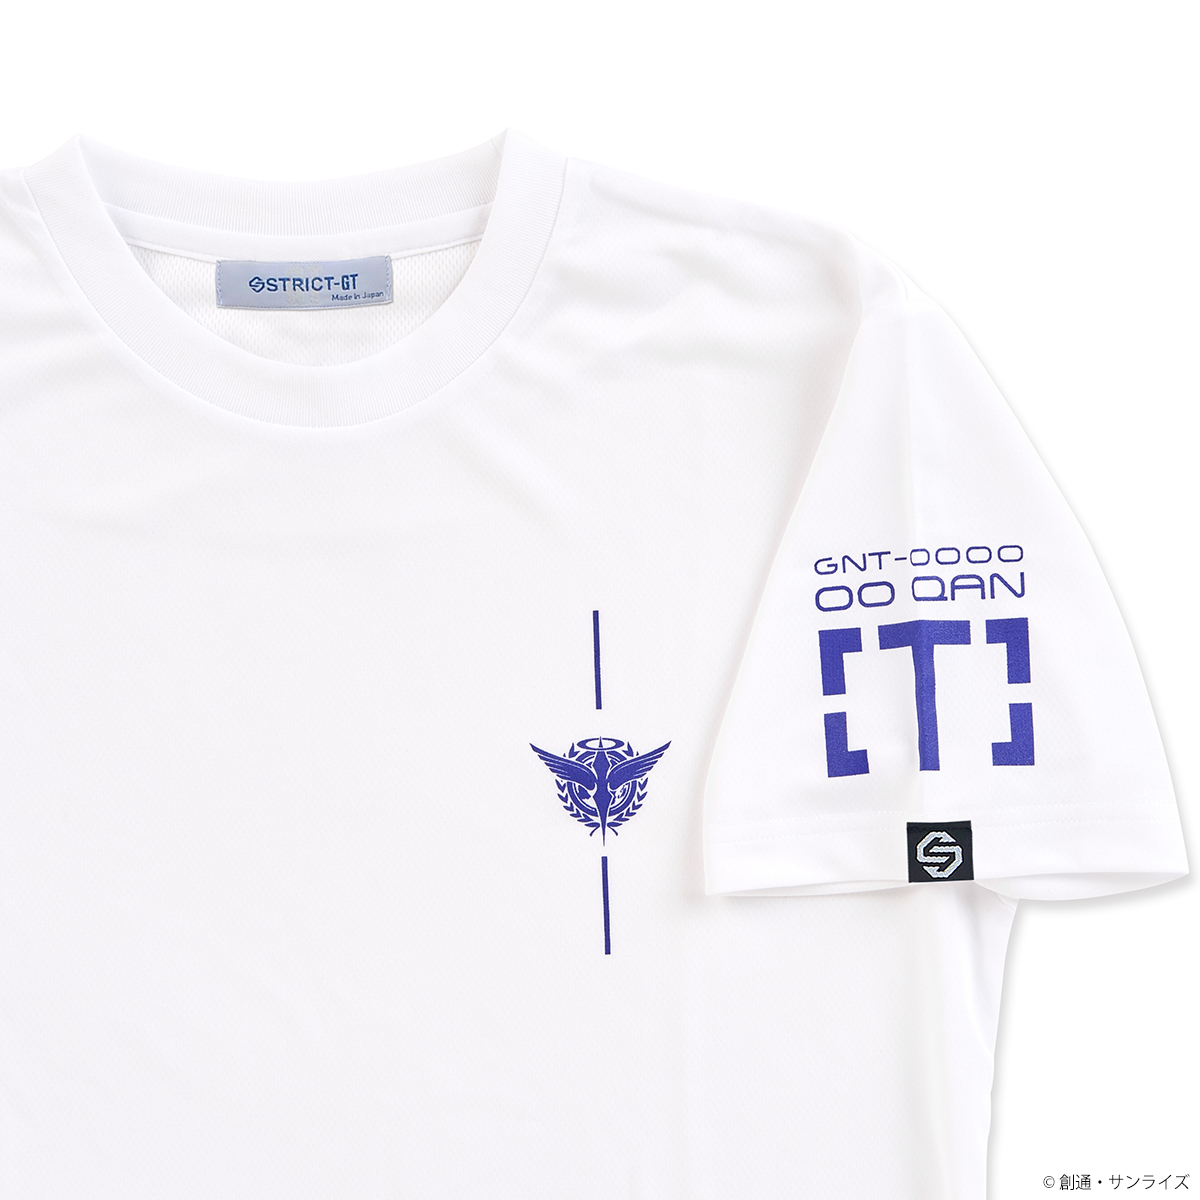 STRICT-G 「MOBILE SUIT GUNDAM 00 THE MOVIE -A WAKENING OF THE TRAILBLAZER-」 00 QAN[T] QUICK-DRYING T-SHIRT